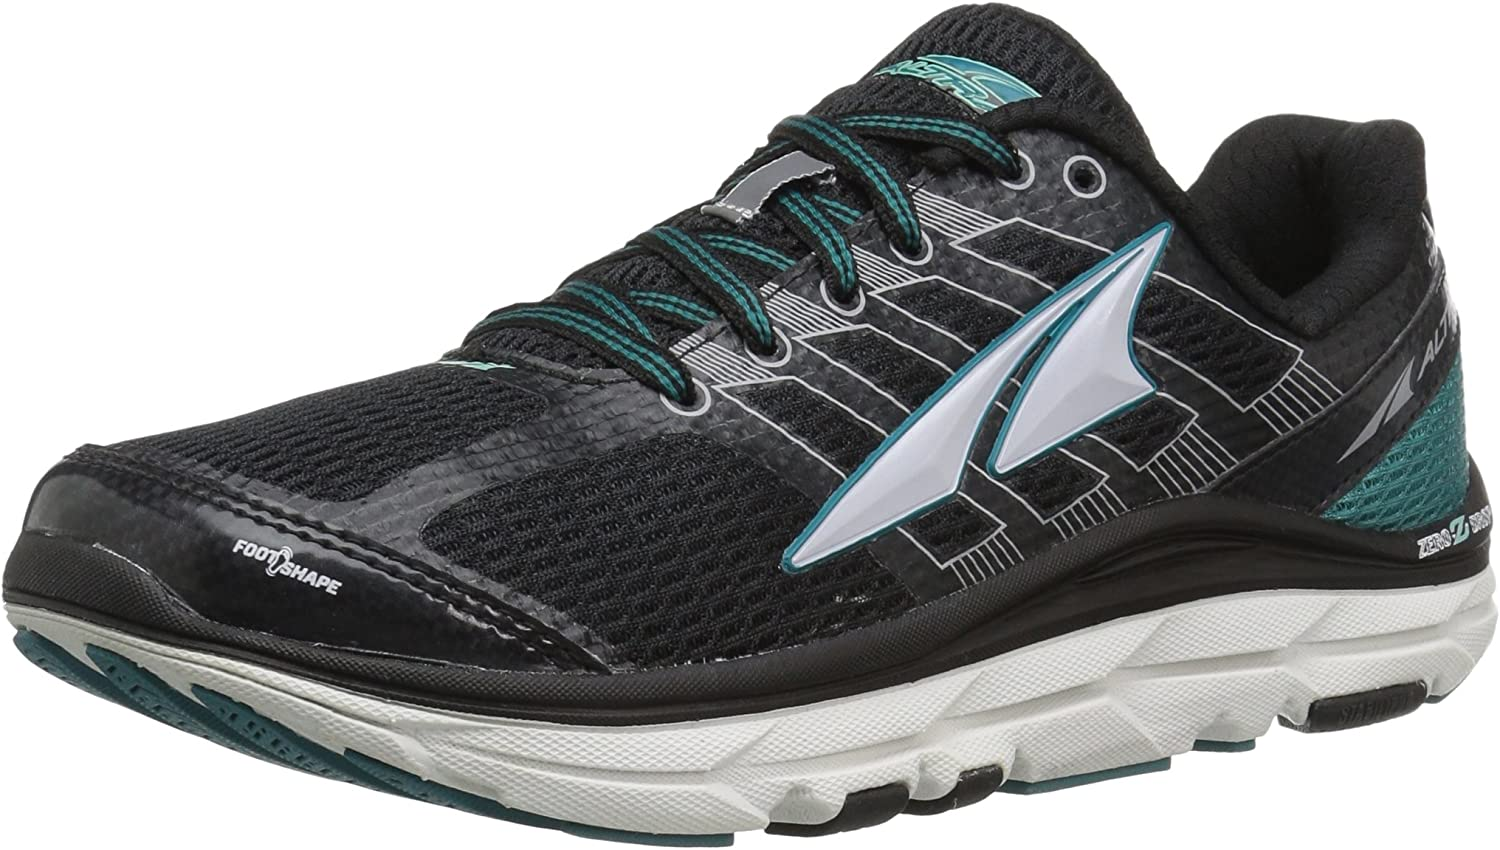 Altra Provision 3.0 Women's Road Running shoes, Black Teal, 7.5